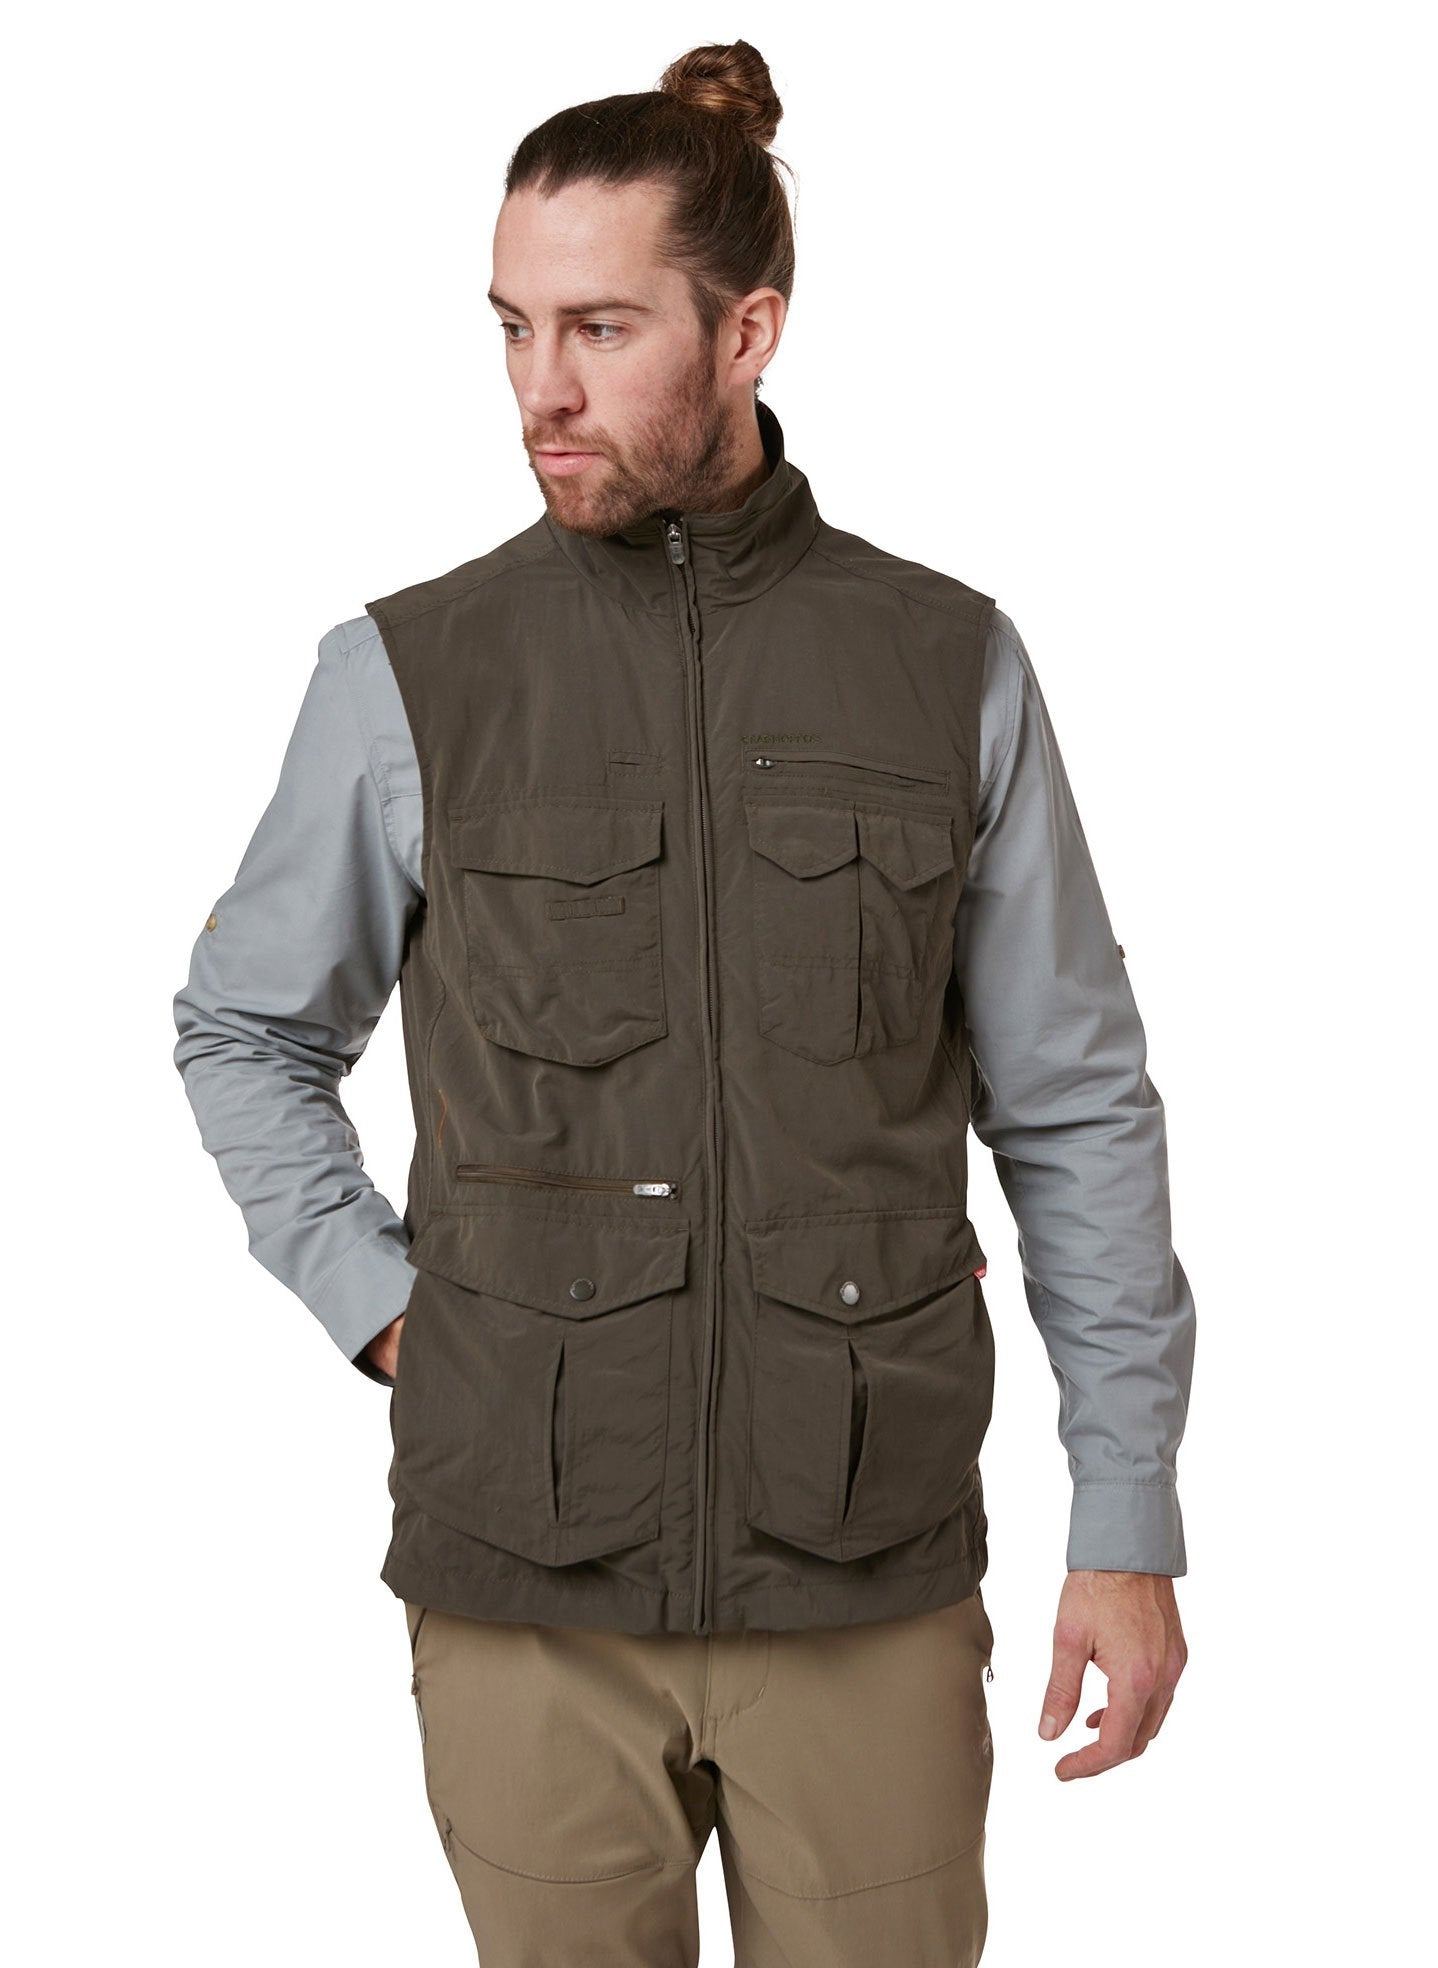 Woodland Green Adventure II Multi-pocket Gilet by Craghoppers